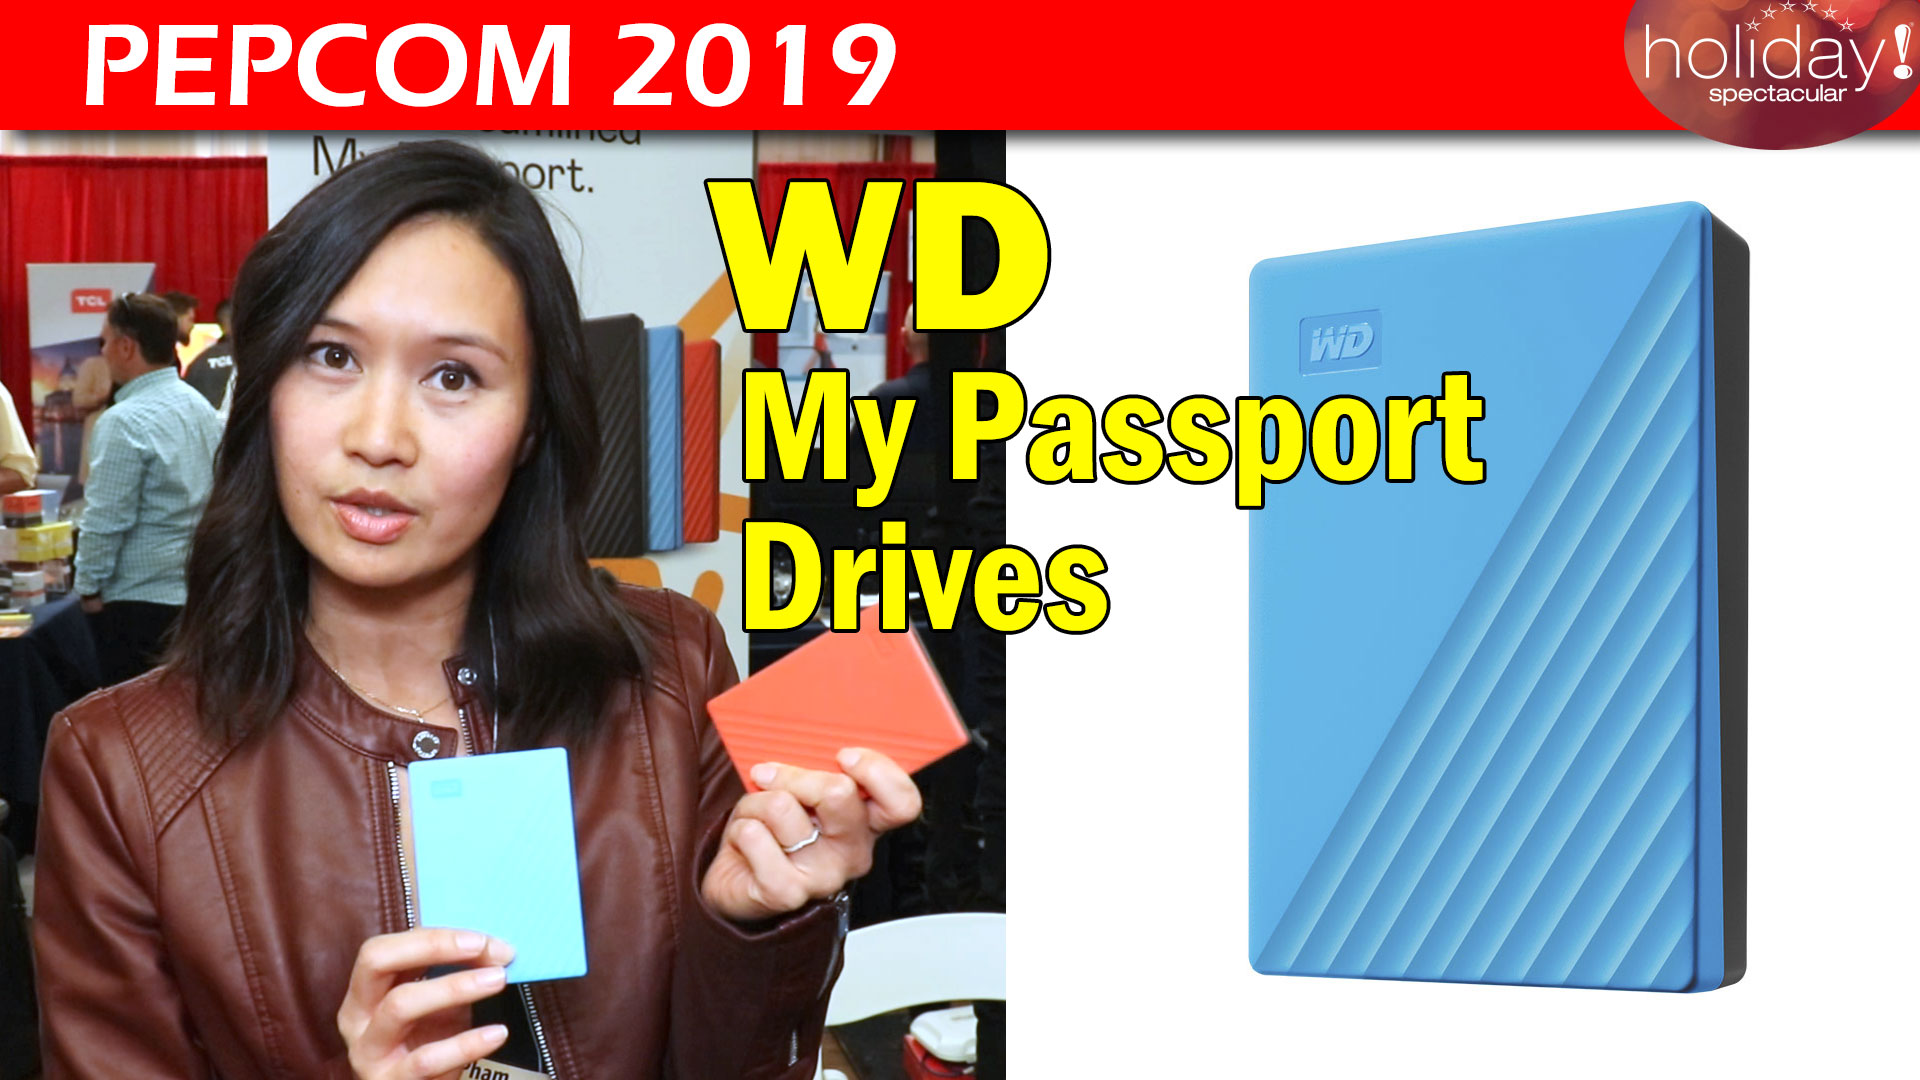 WD My Passport Drives